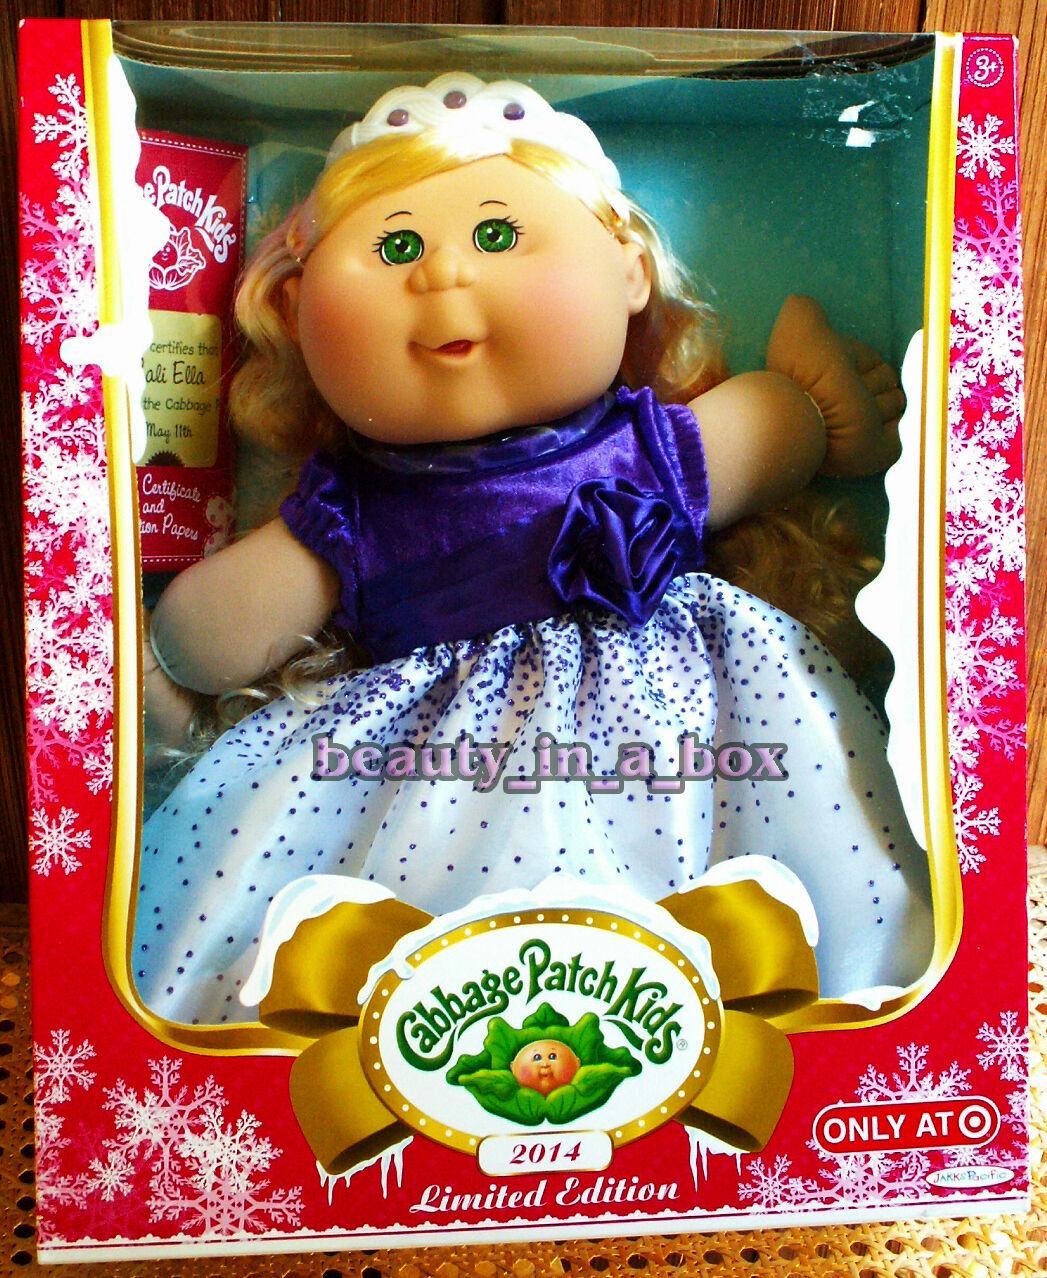 Cabbage Cabbage Cabbage Patch Kids Doll 2014 Holiday Blonde Hair lila Dress Cali Ella  May 11 5d60bf